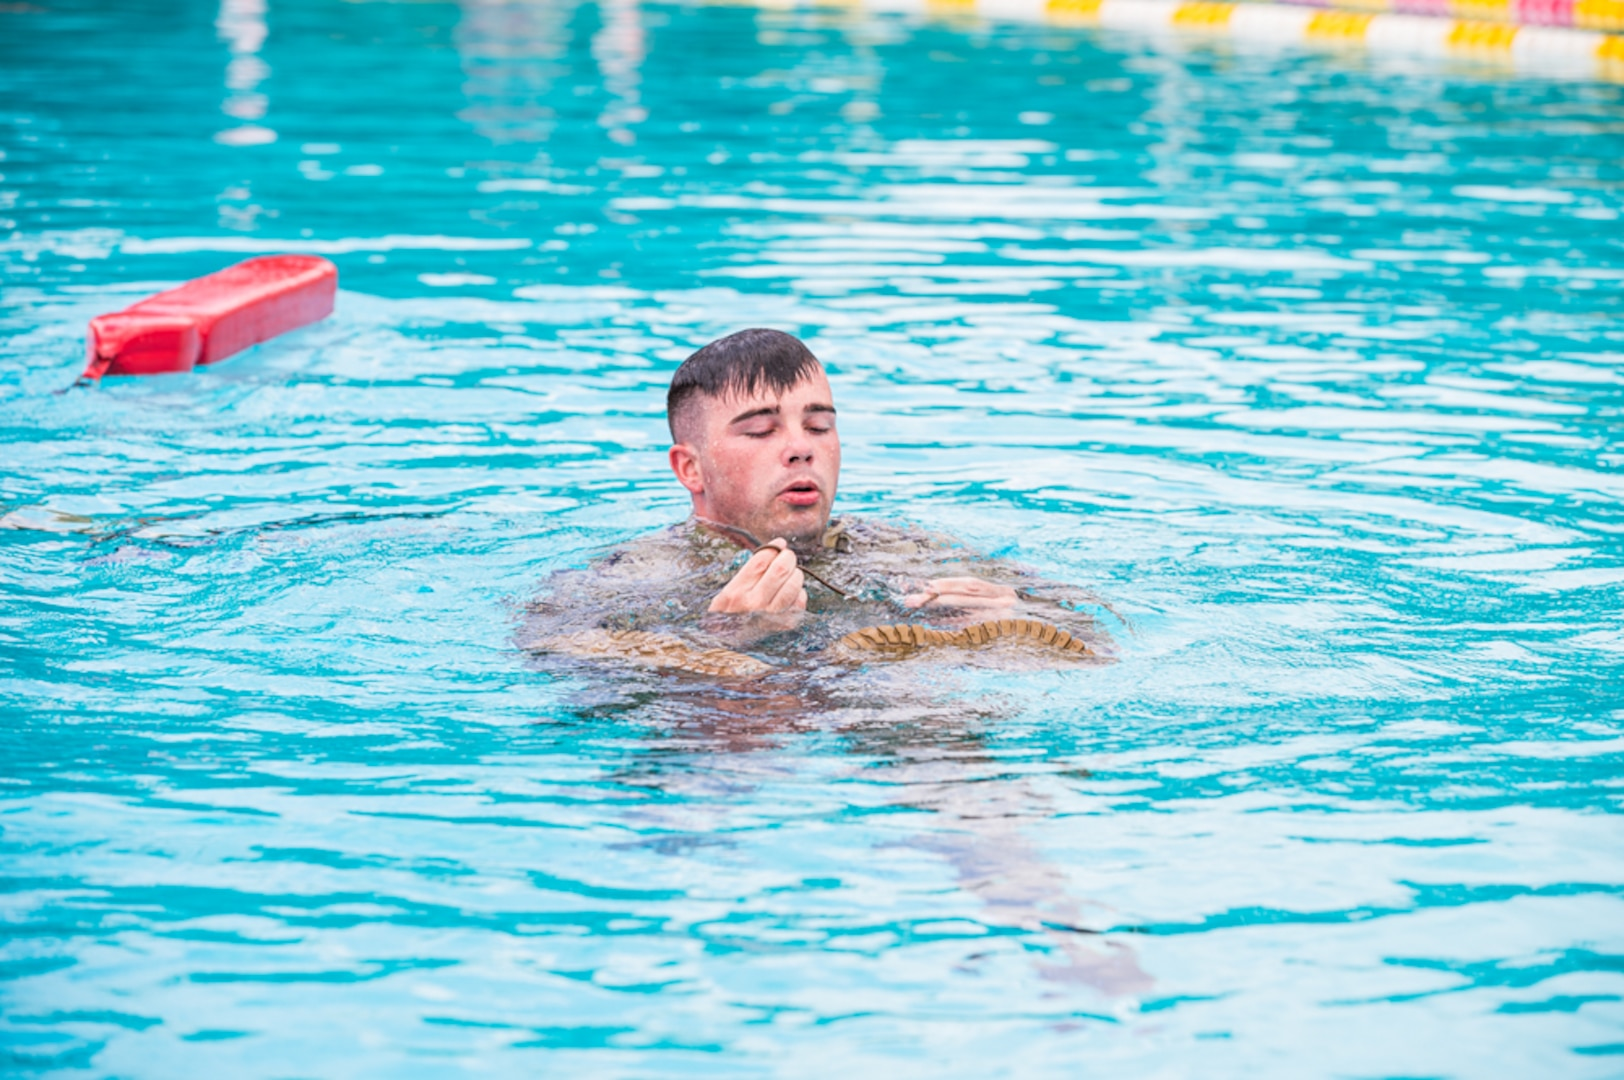 Army Staff Sgt. Edward Nelan competes in the water survival portion of the 2021 U.S. Army Medical Command Best Leader Competition on July 26, 2021.